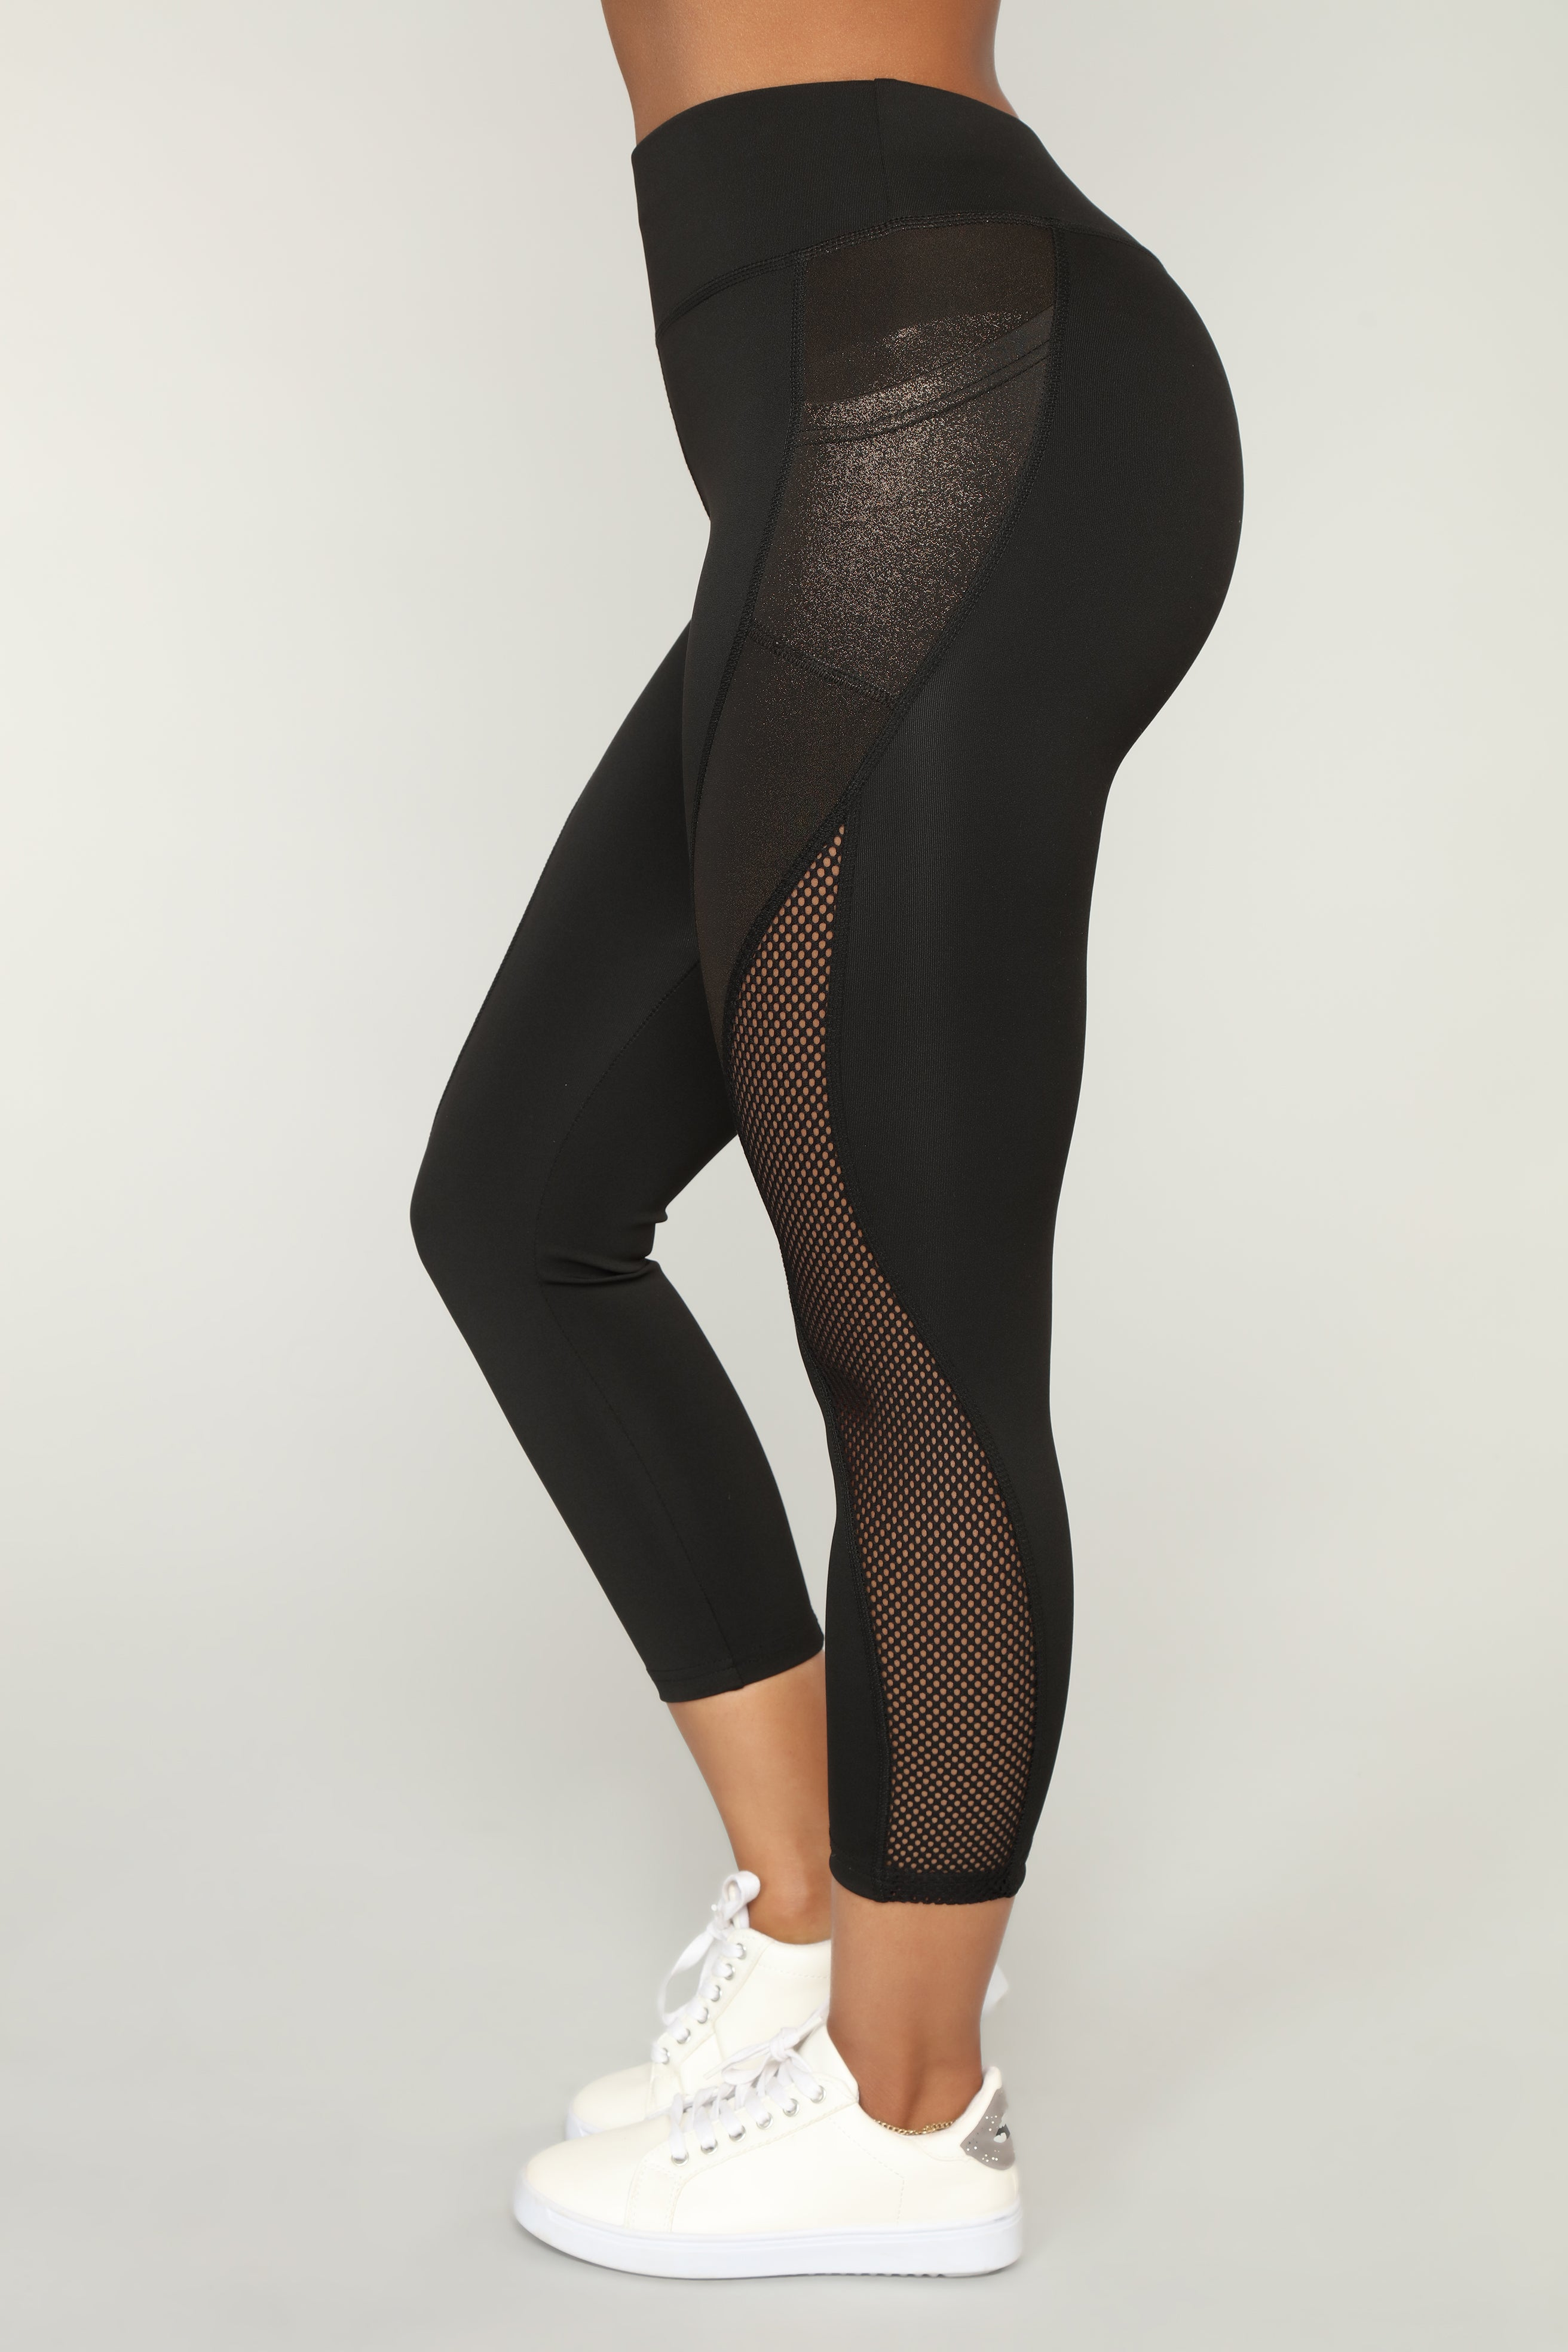 ee11a7566 https   www.fashionnova.com products couldnt-be-more-clear-pump ...